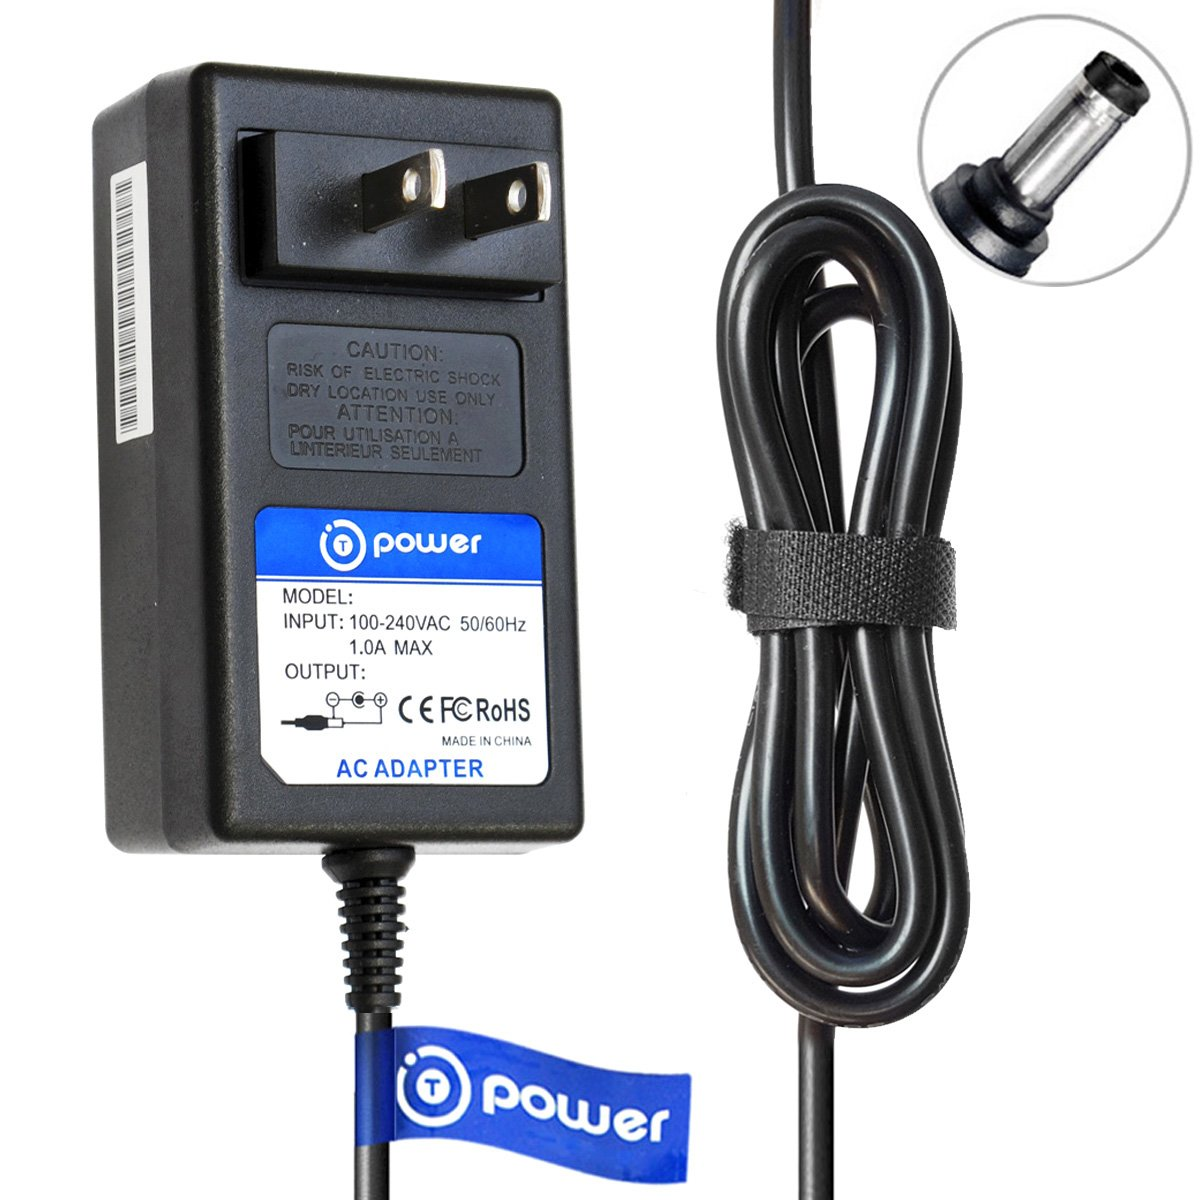 T-Power Ac Dc Adapter Charger for Williams Allegro 88-key Piano & Yamaha Digital Piano Midi Keyboard Series: YPG, YDP, YPP, YPR, YPT, CP, DGX, DJX, DSR, DX, EZ, NP, P, PC, PCS, PSS PCR